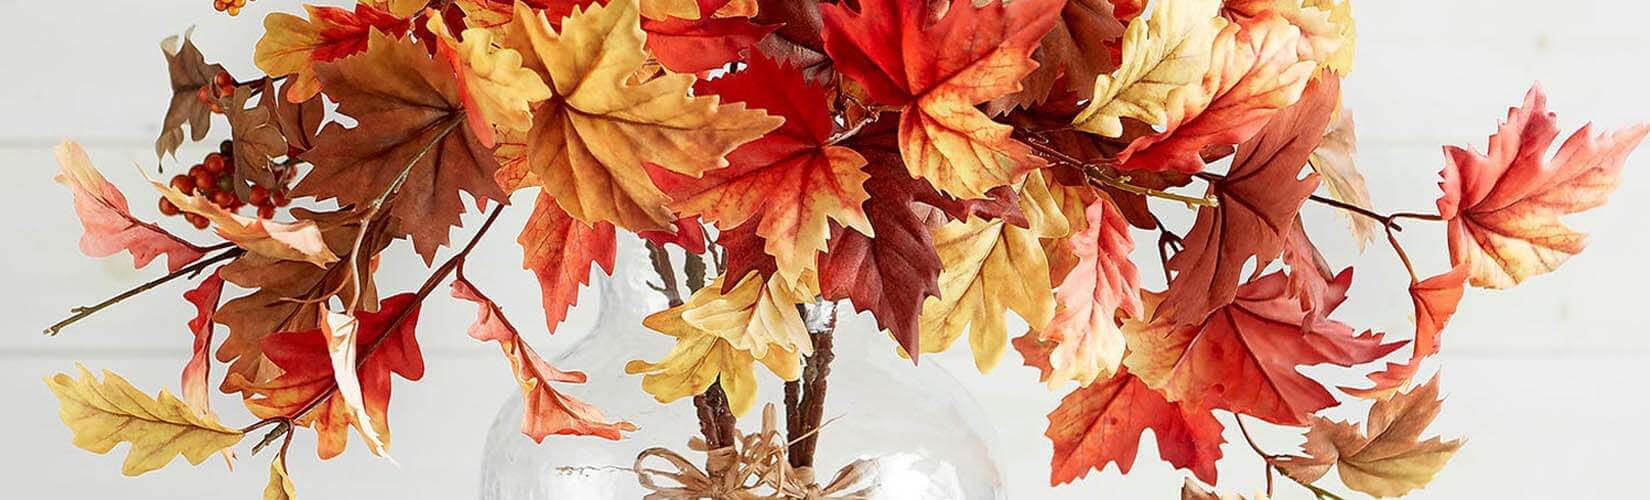 Autumn Flowers & Flower Accessories To Suit The Season